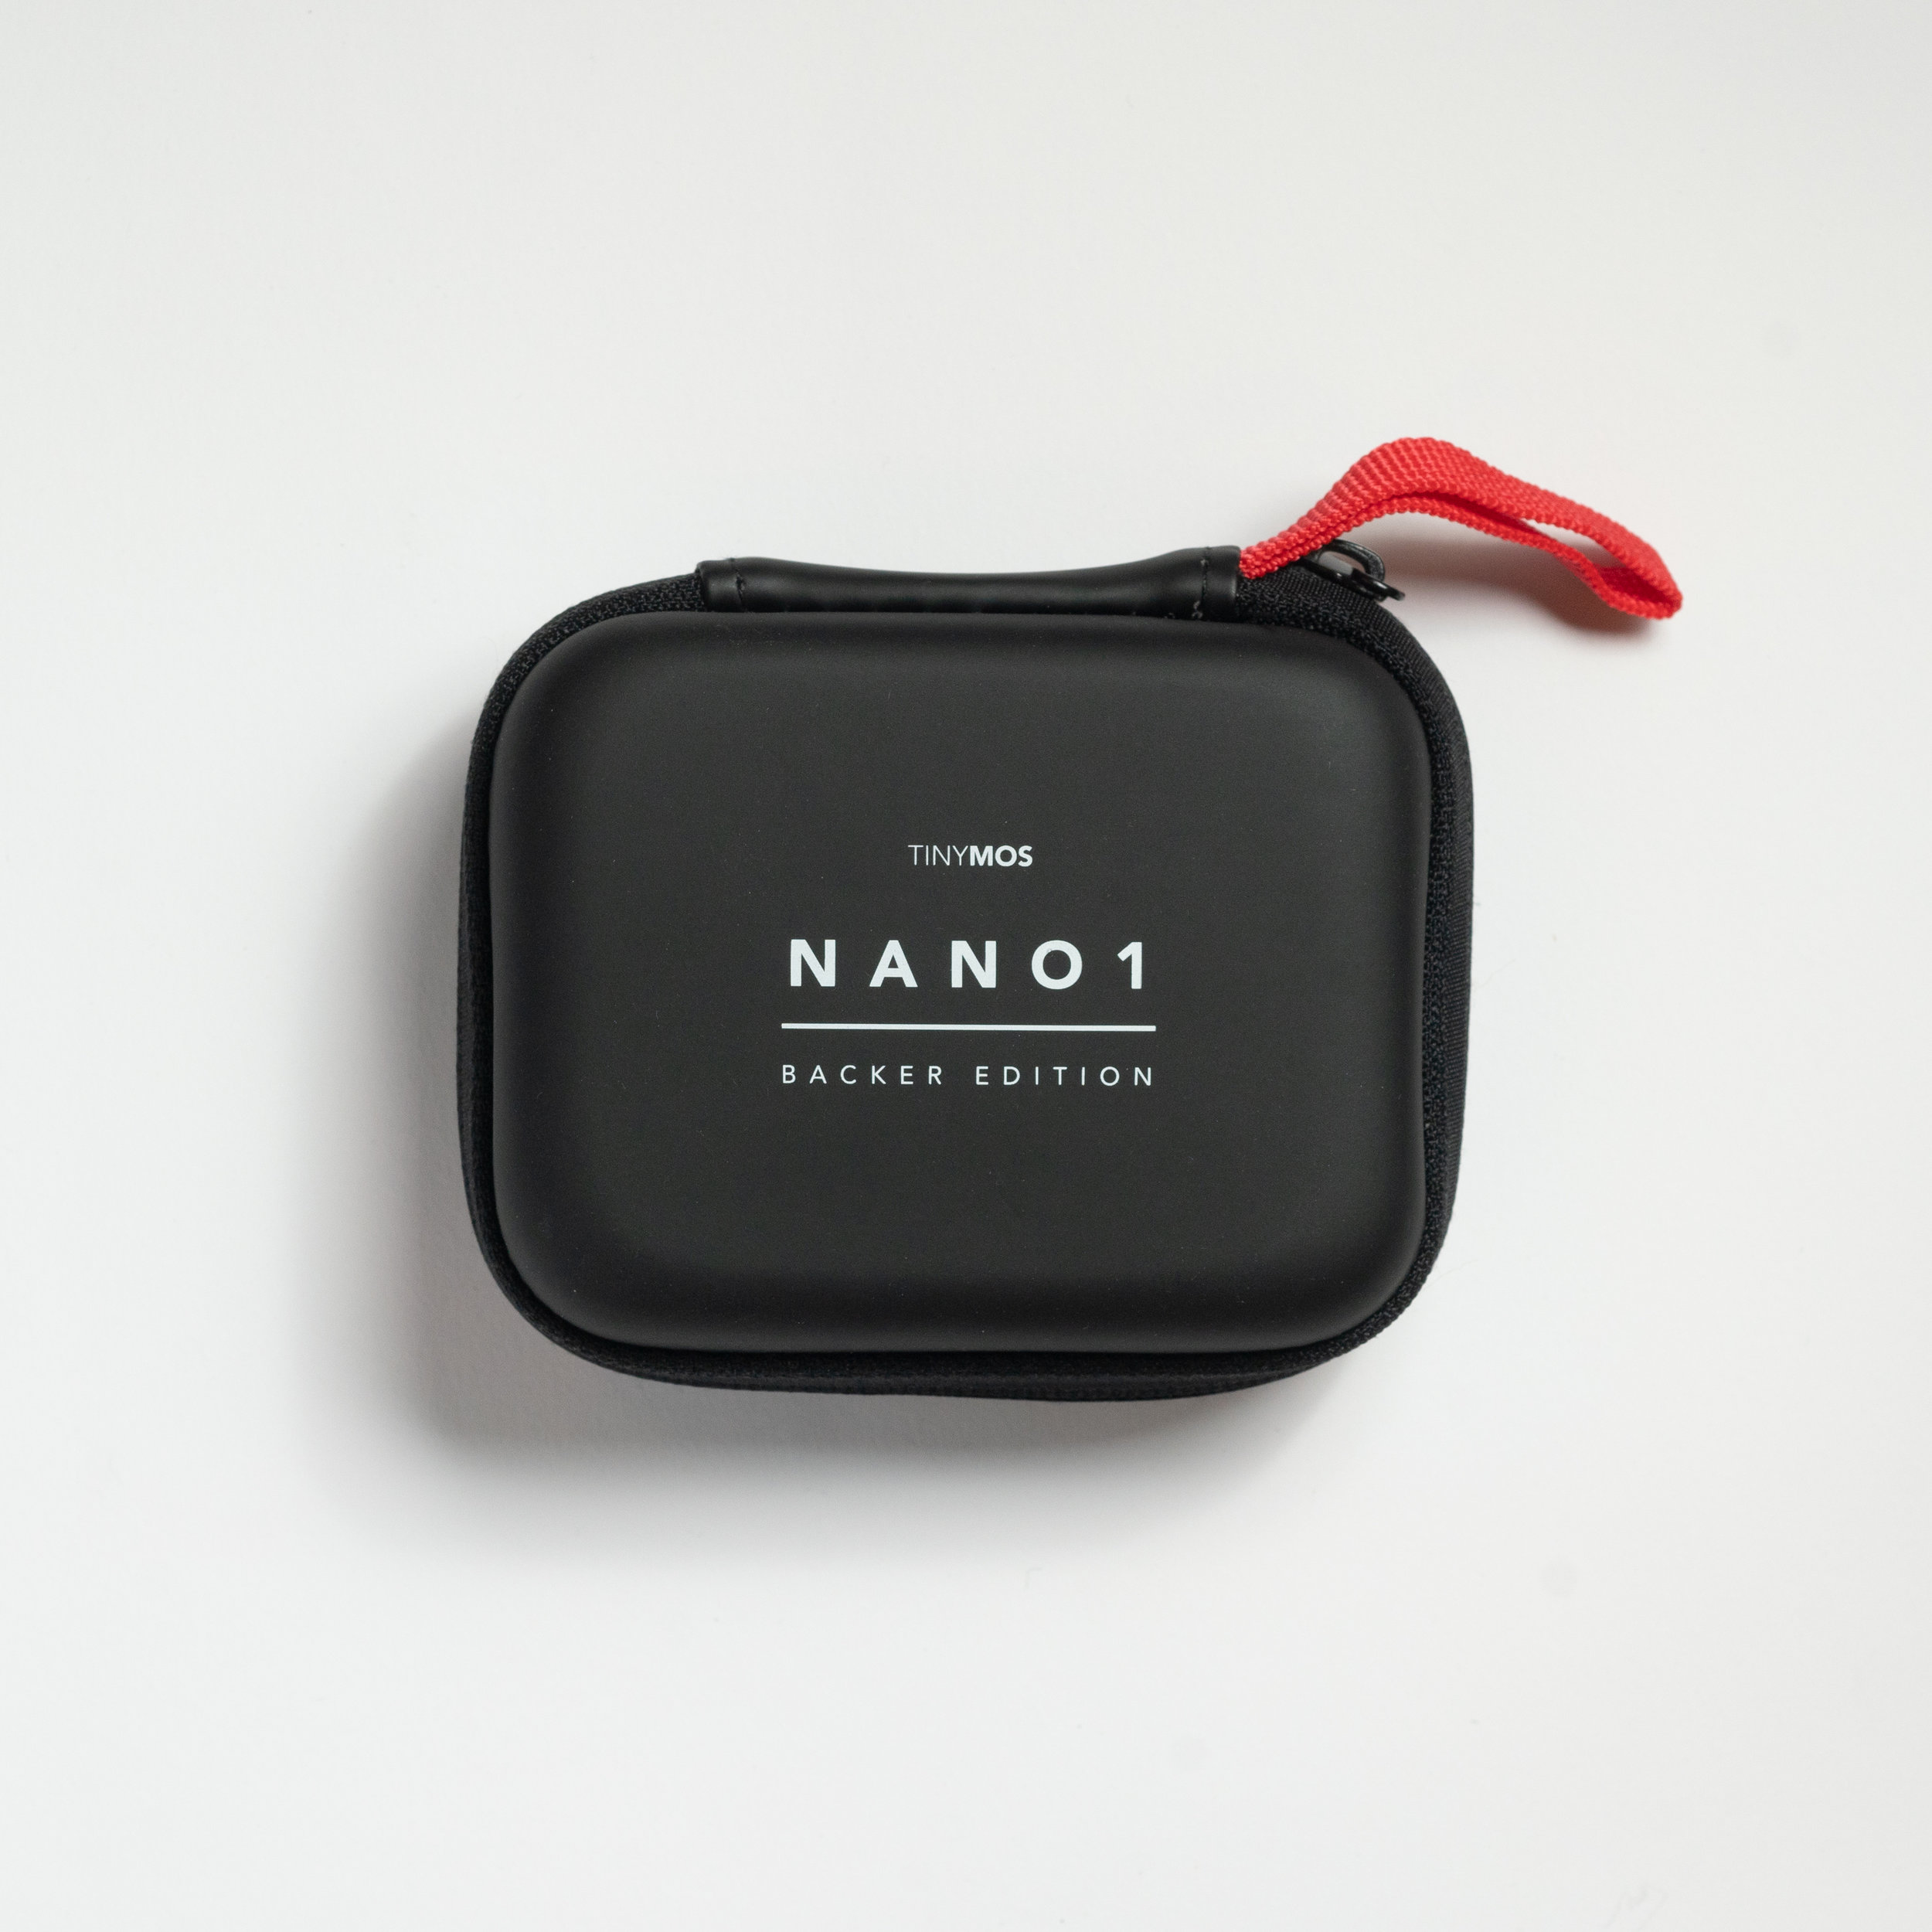 The NANO1 case has a loop for you to hook it to your bag for easy carrying